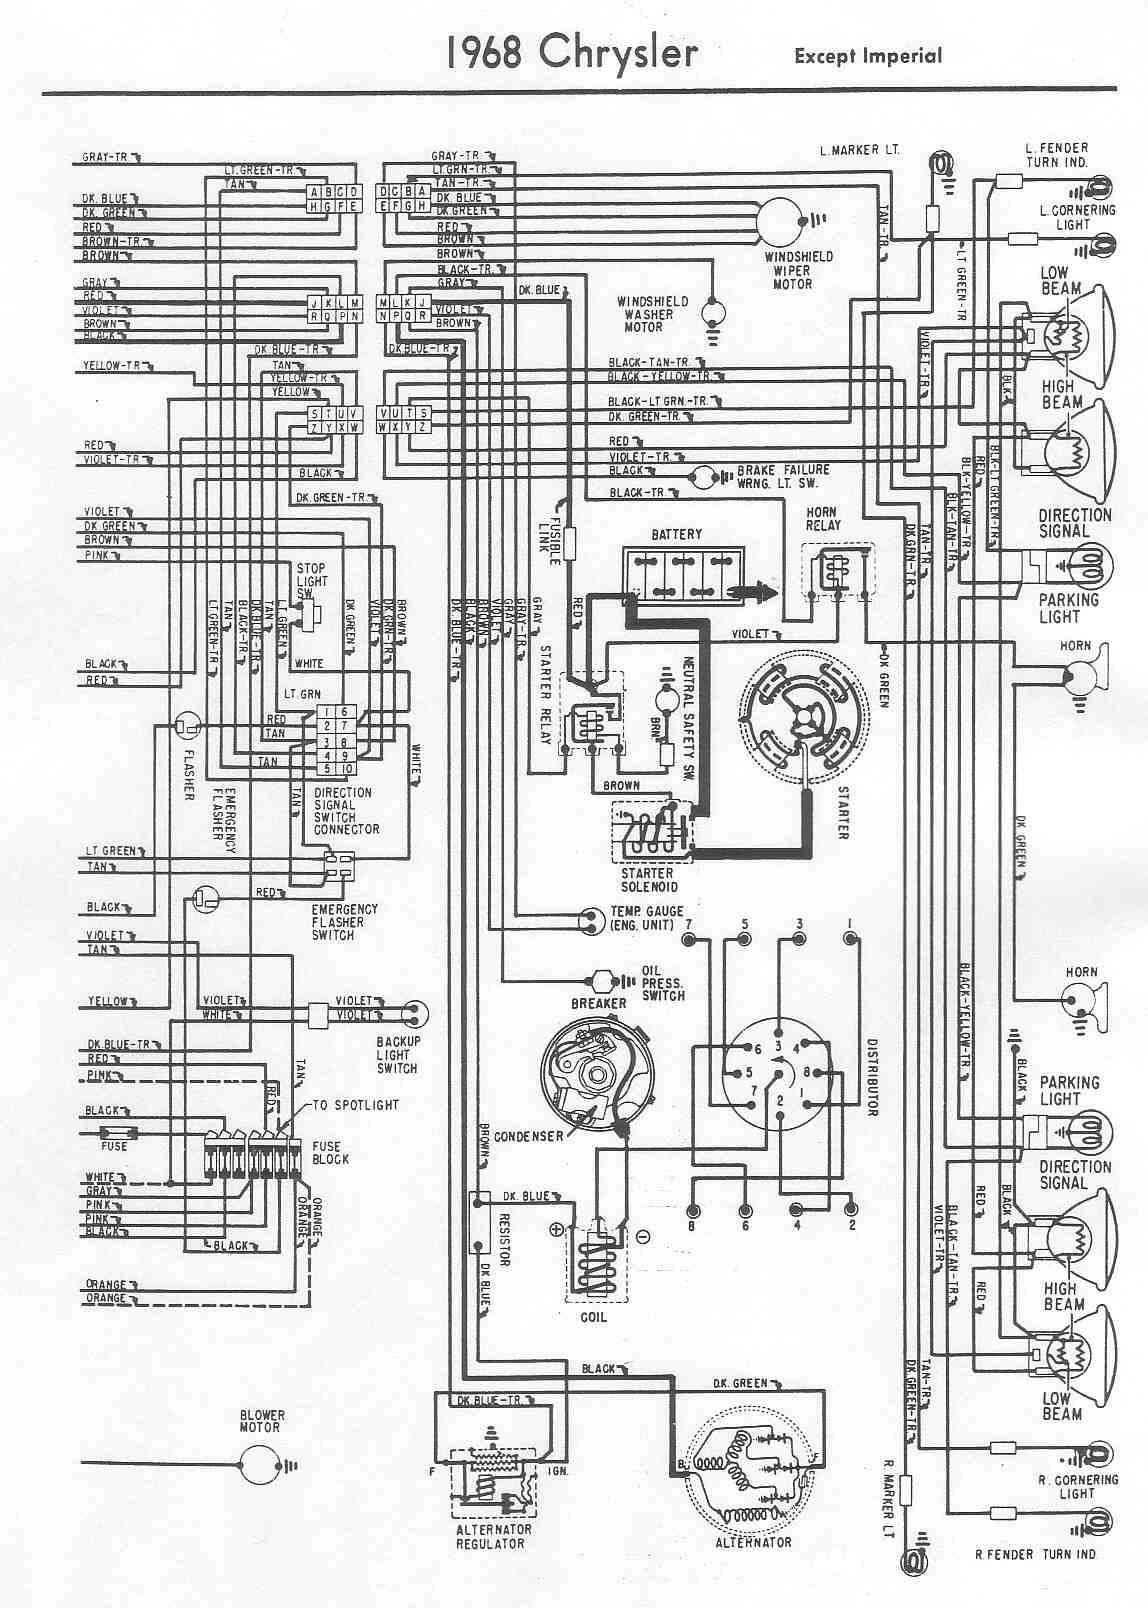 Ford Regulator Wiring Diagram 1965 Electrical Diagrams Voltage 1959 Trusted 65 Chrysler